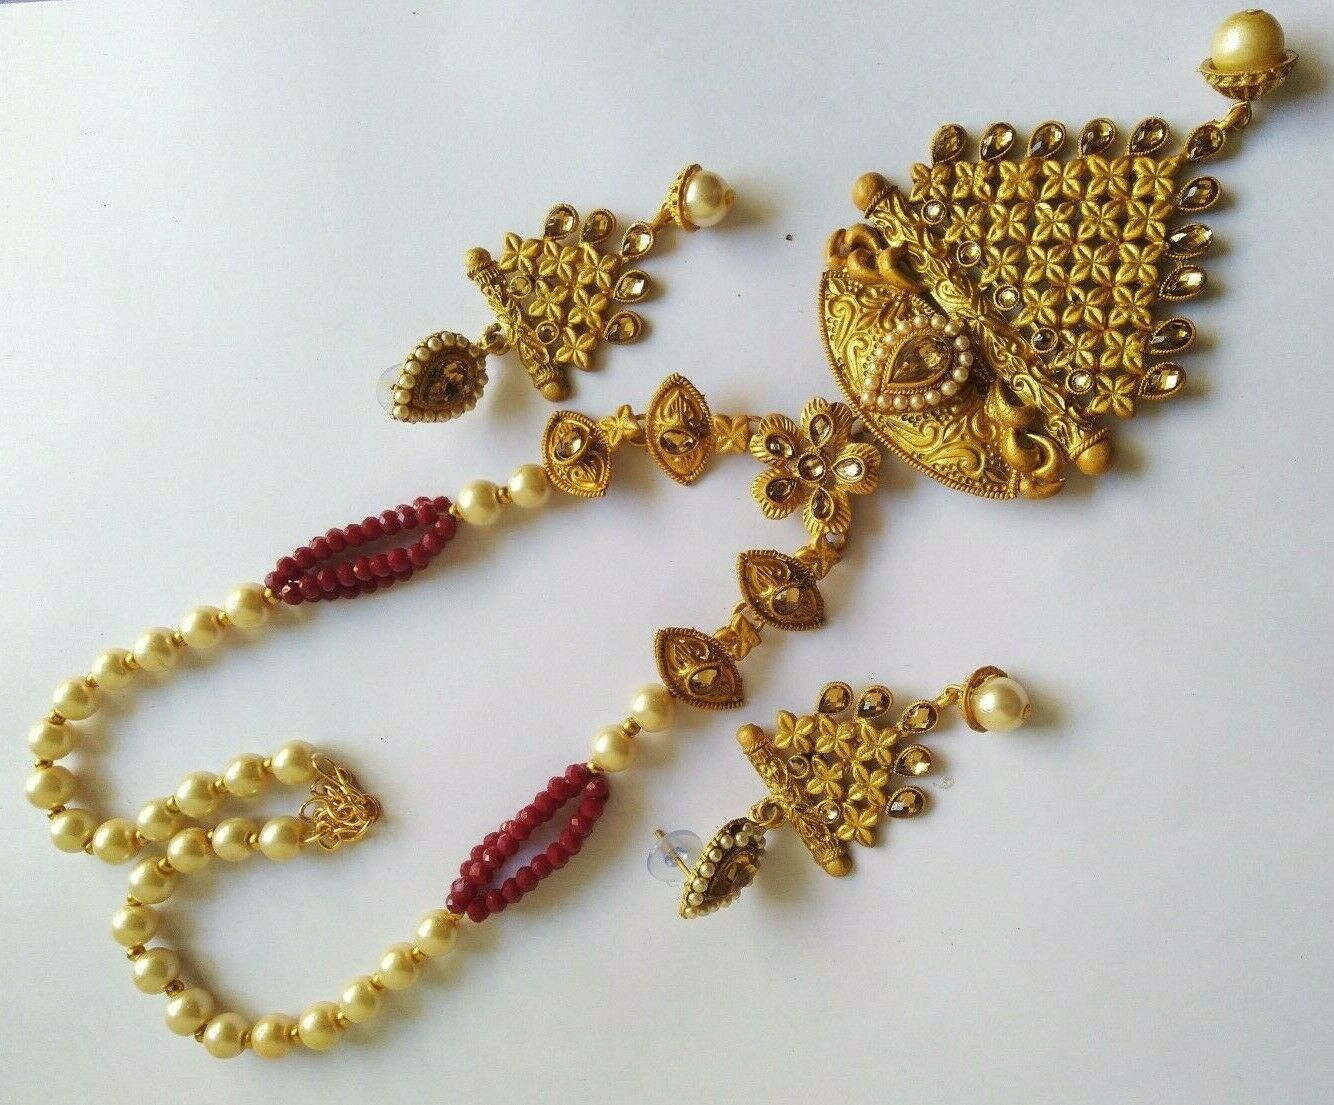 Indian Maroon Pearl Necklace Earrings Set Micro Gold Plated Fashion Jewelry image 2